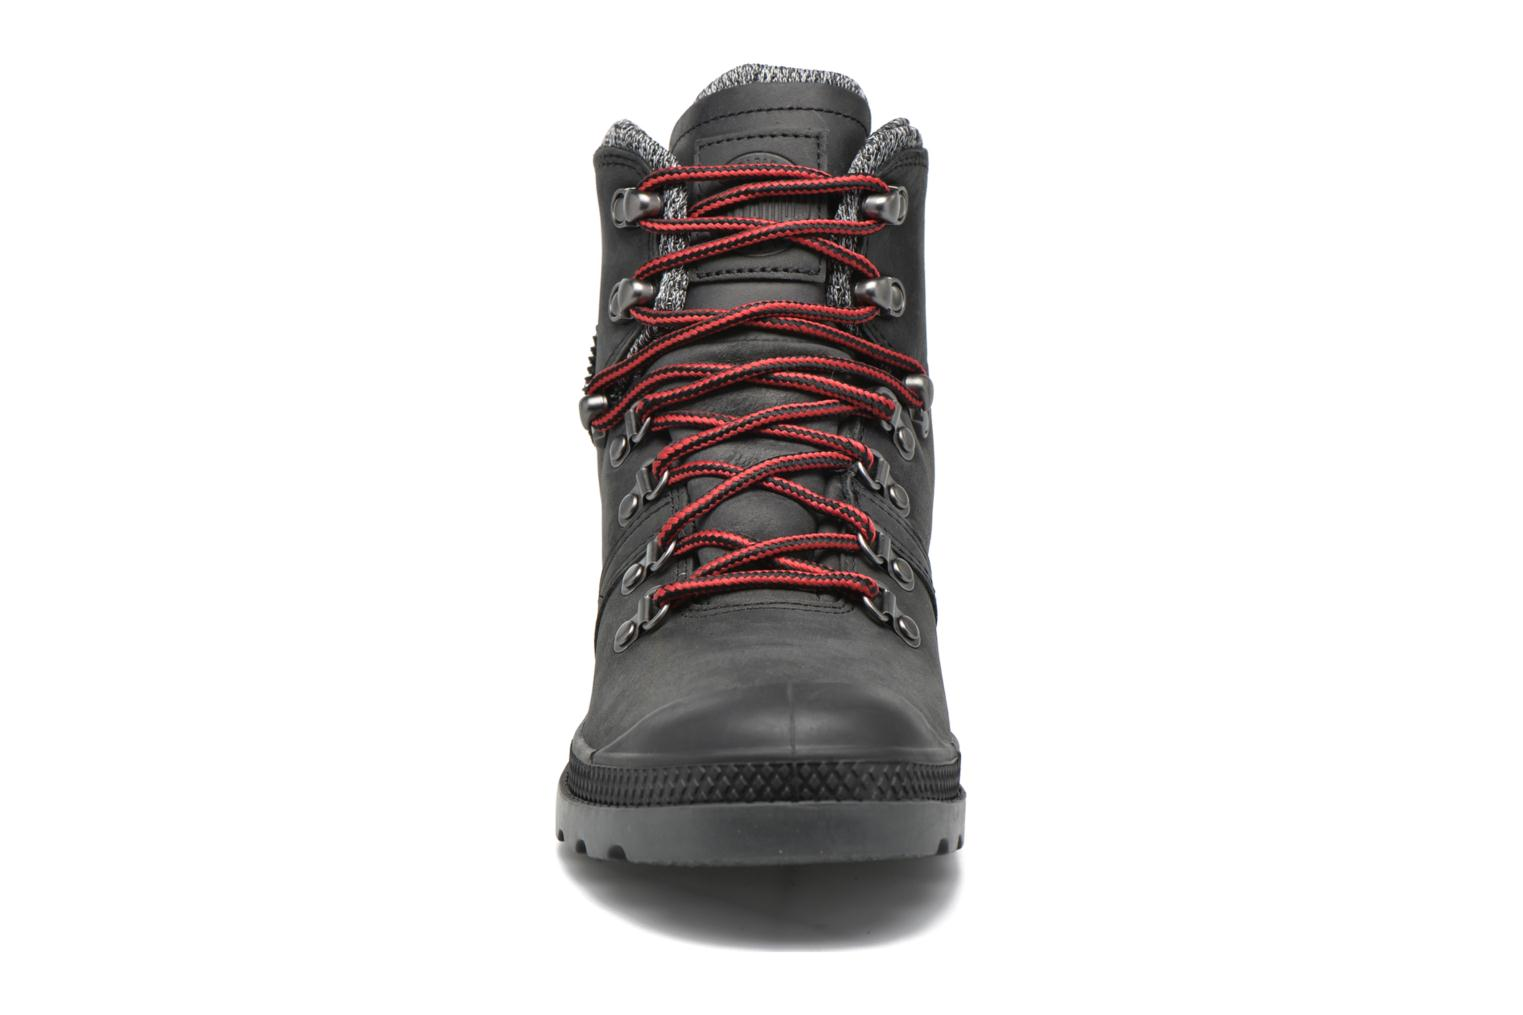 Pallab Hk LP F Black/Red/Castlerock